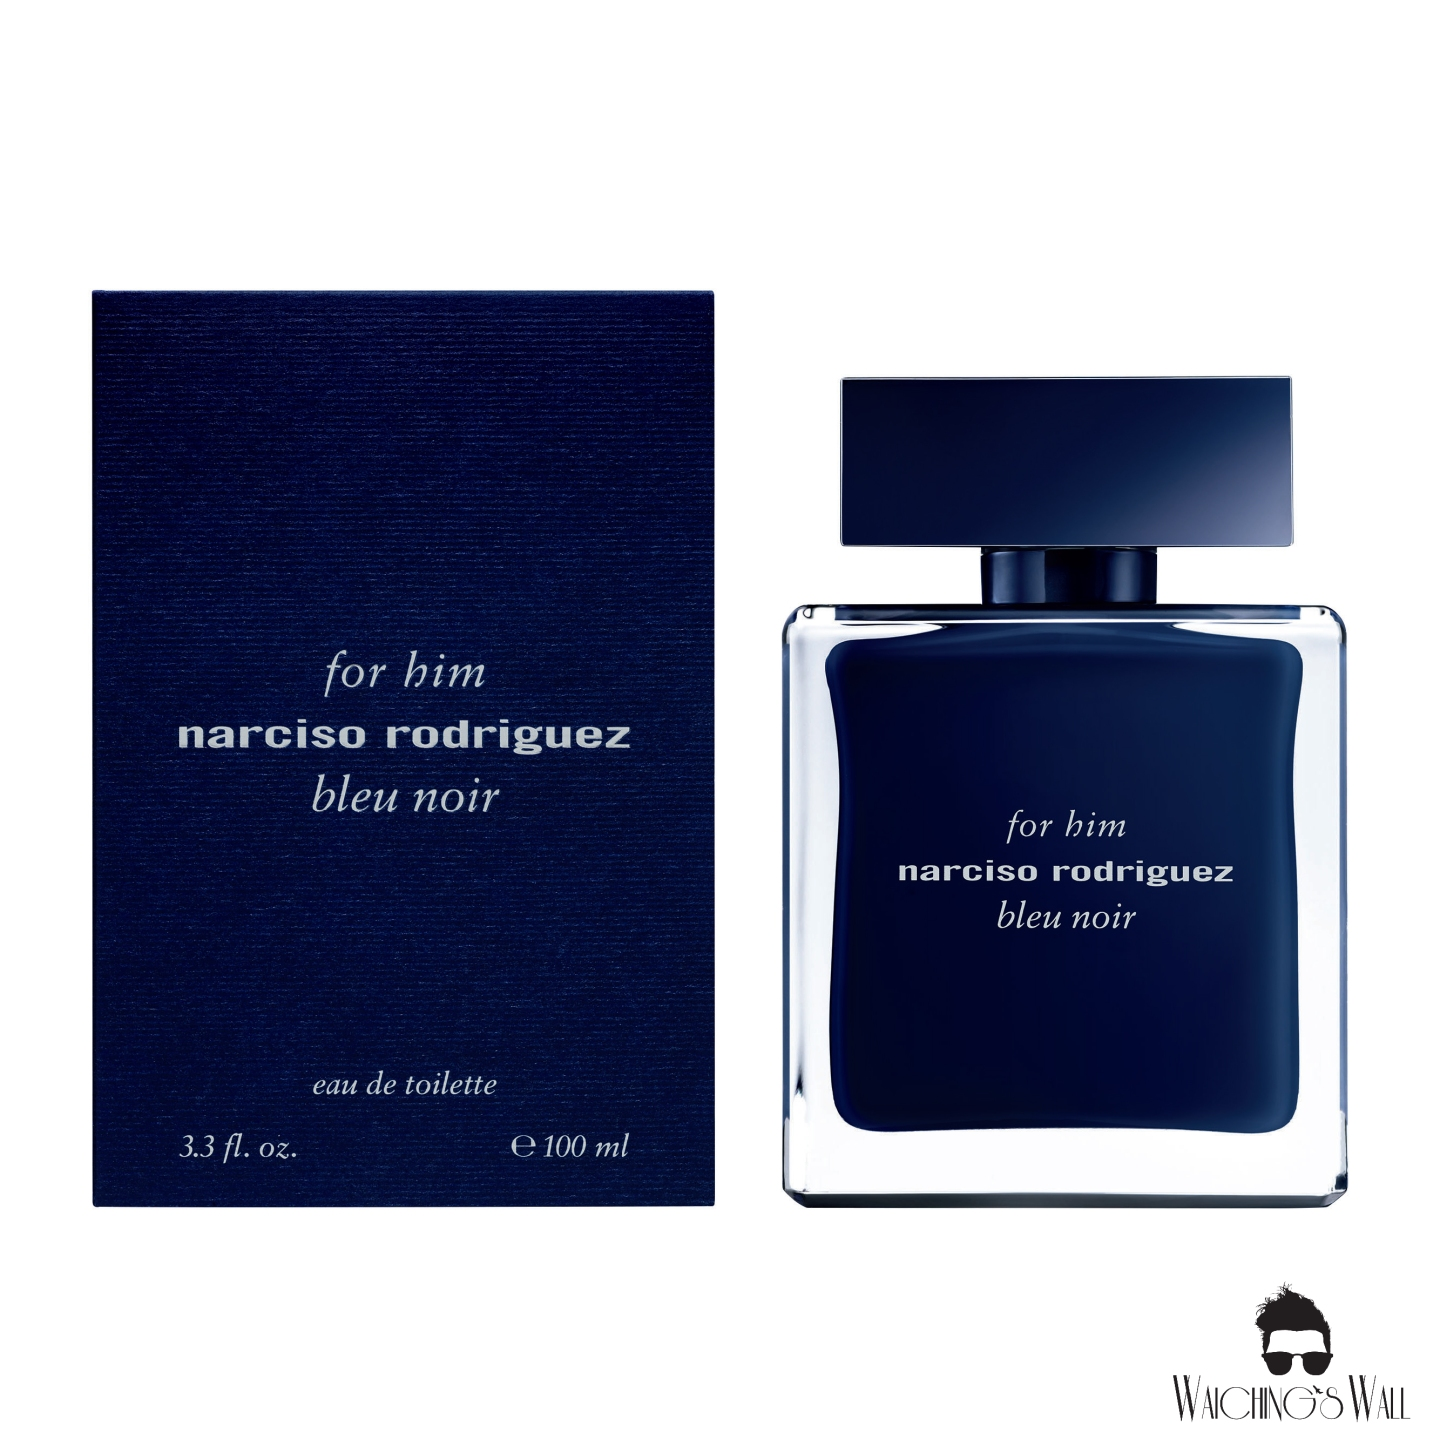 Narciso Rodriguez_Waichings Wall-02